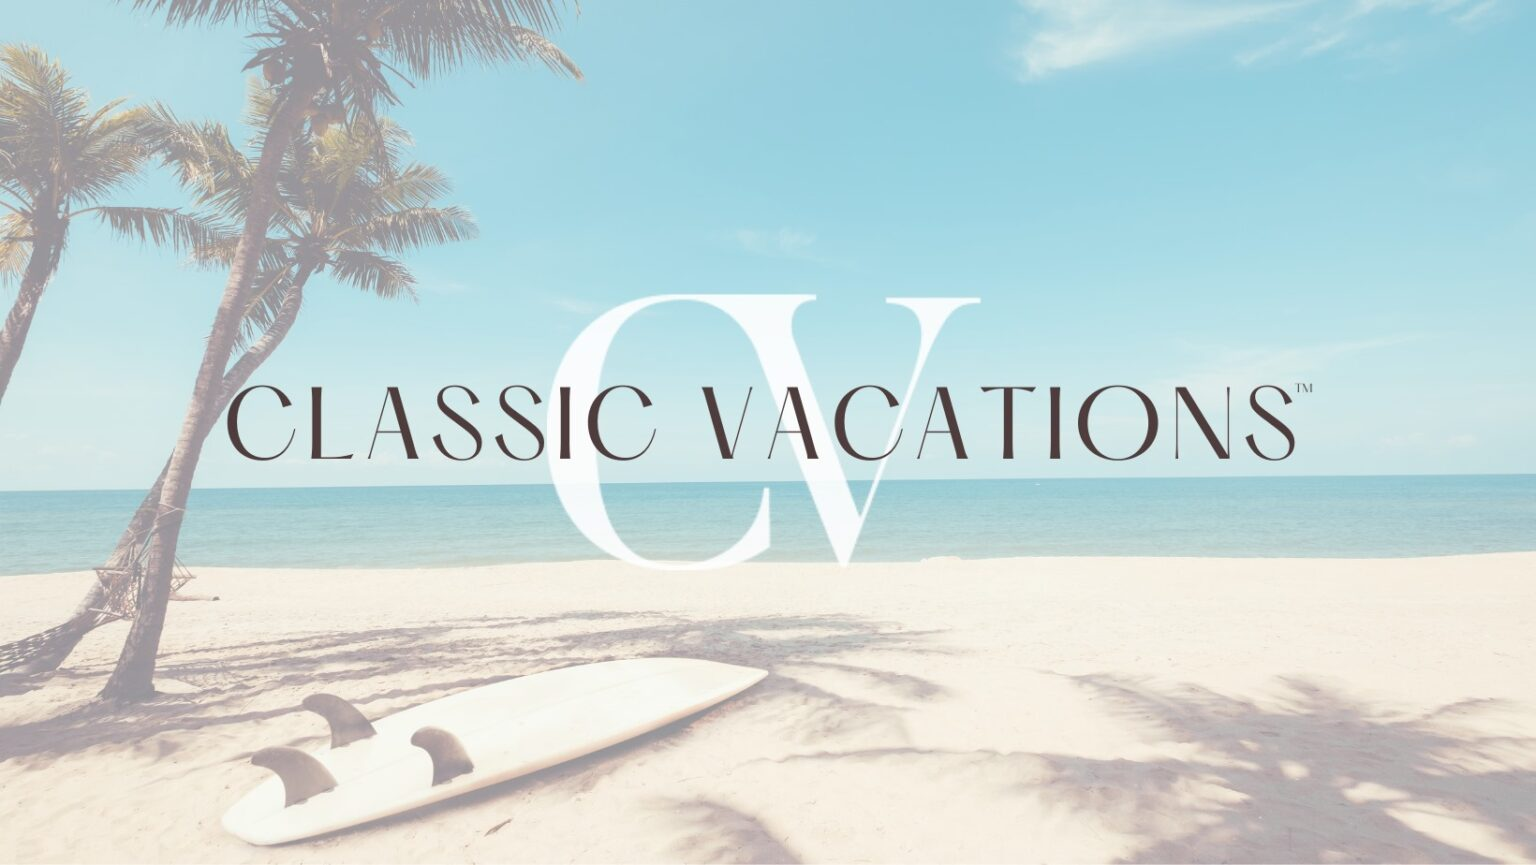 The Najafi Companies to acquire all the assets of Classic Vacations from Expedia Group